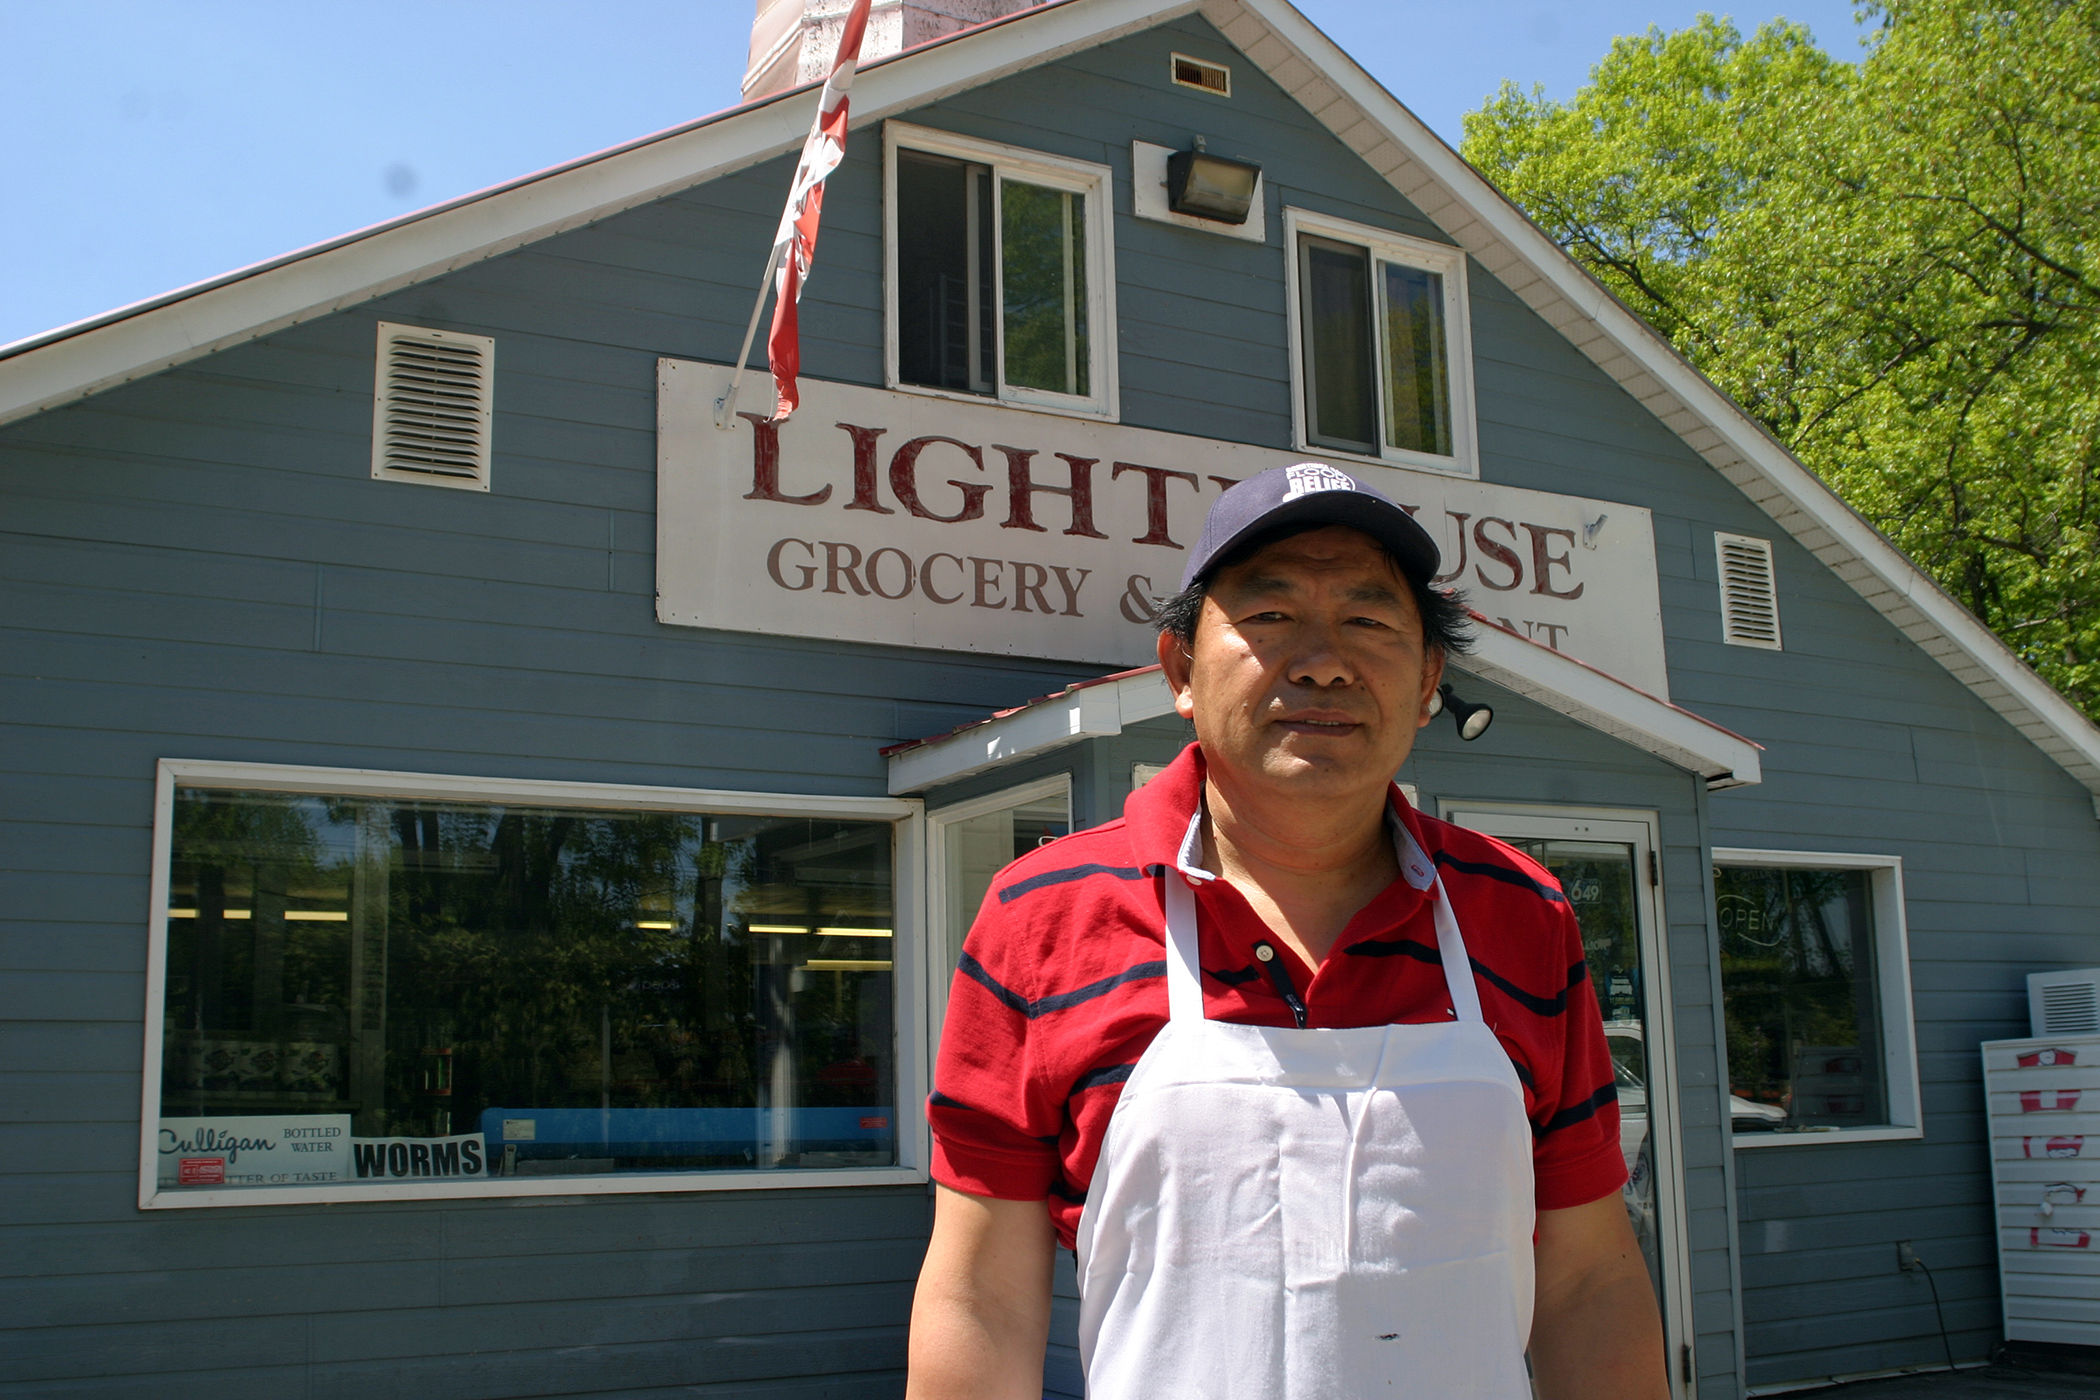 Lighthouse re-opens after six long weeks